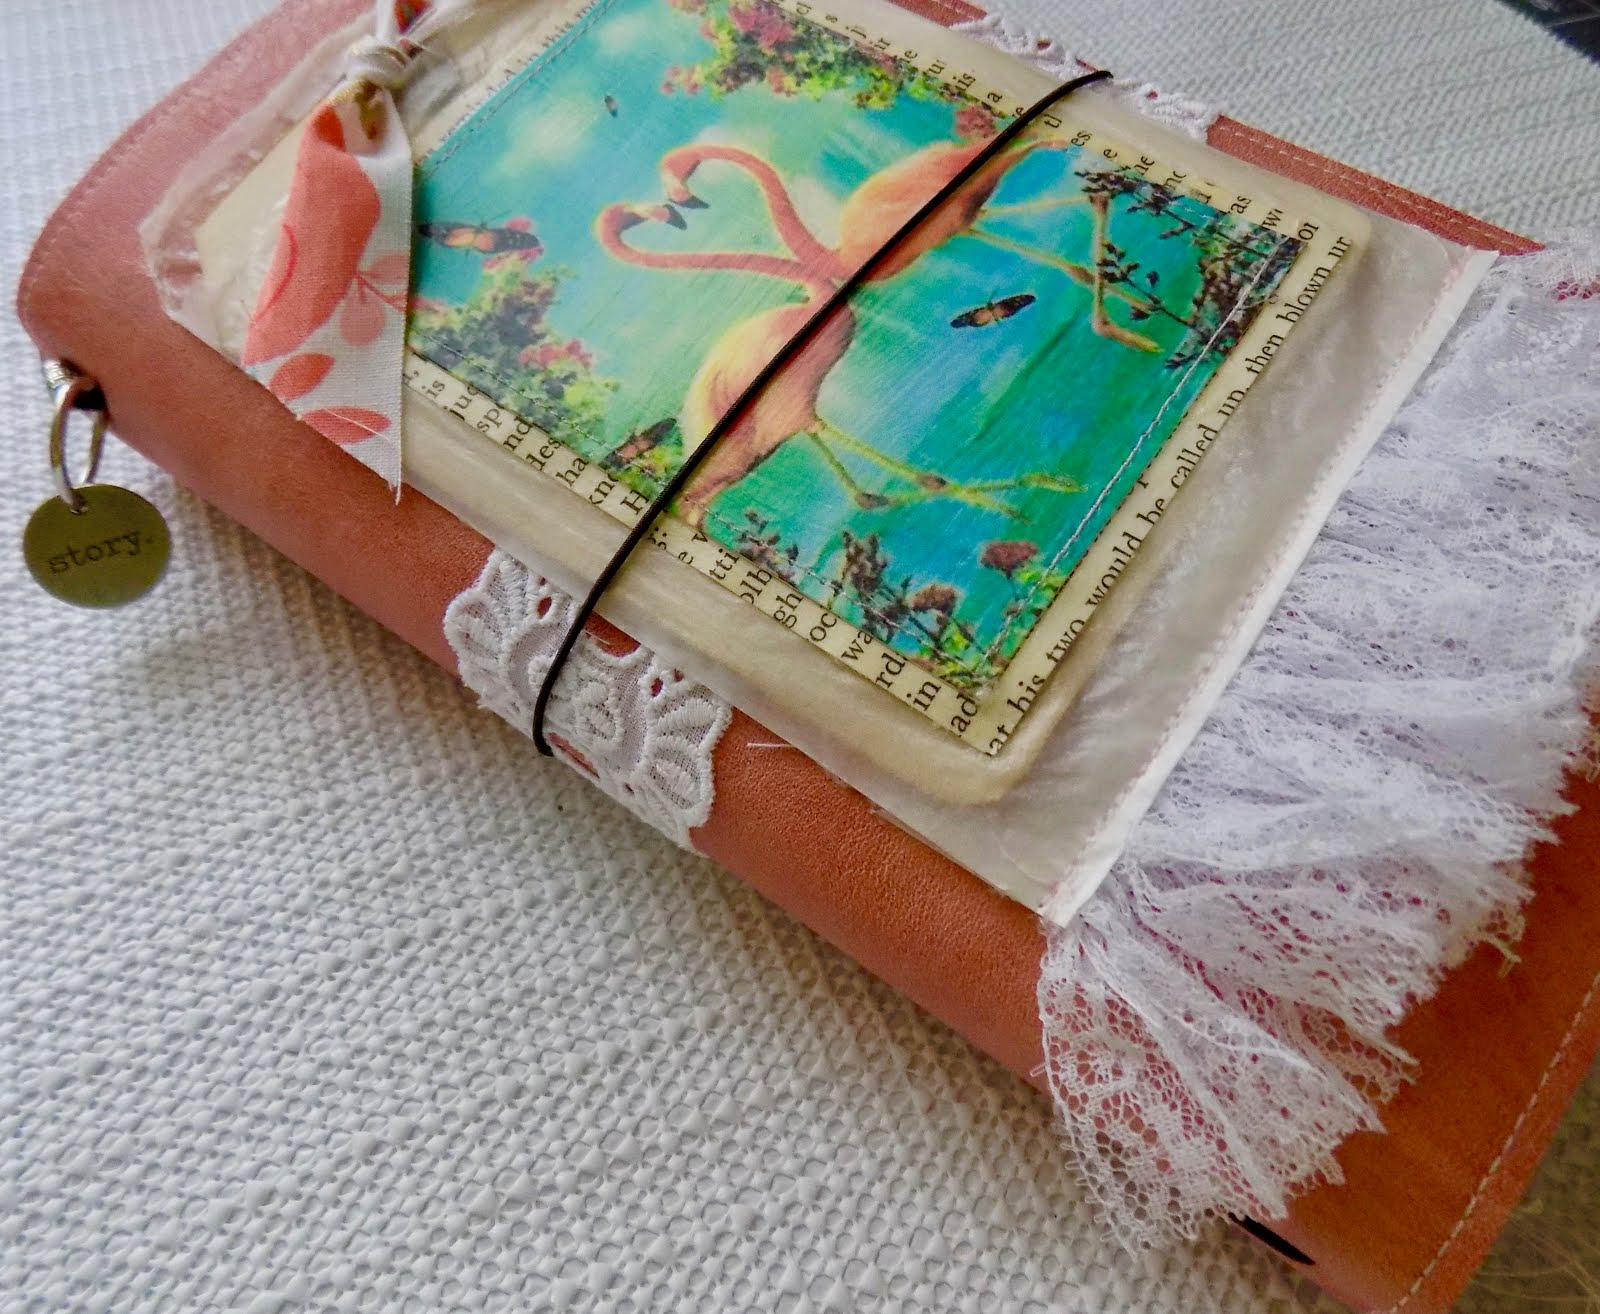 FOR SALE: Flamingo Travelers Notebook